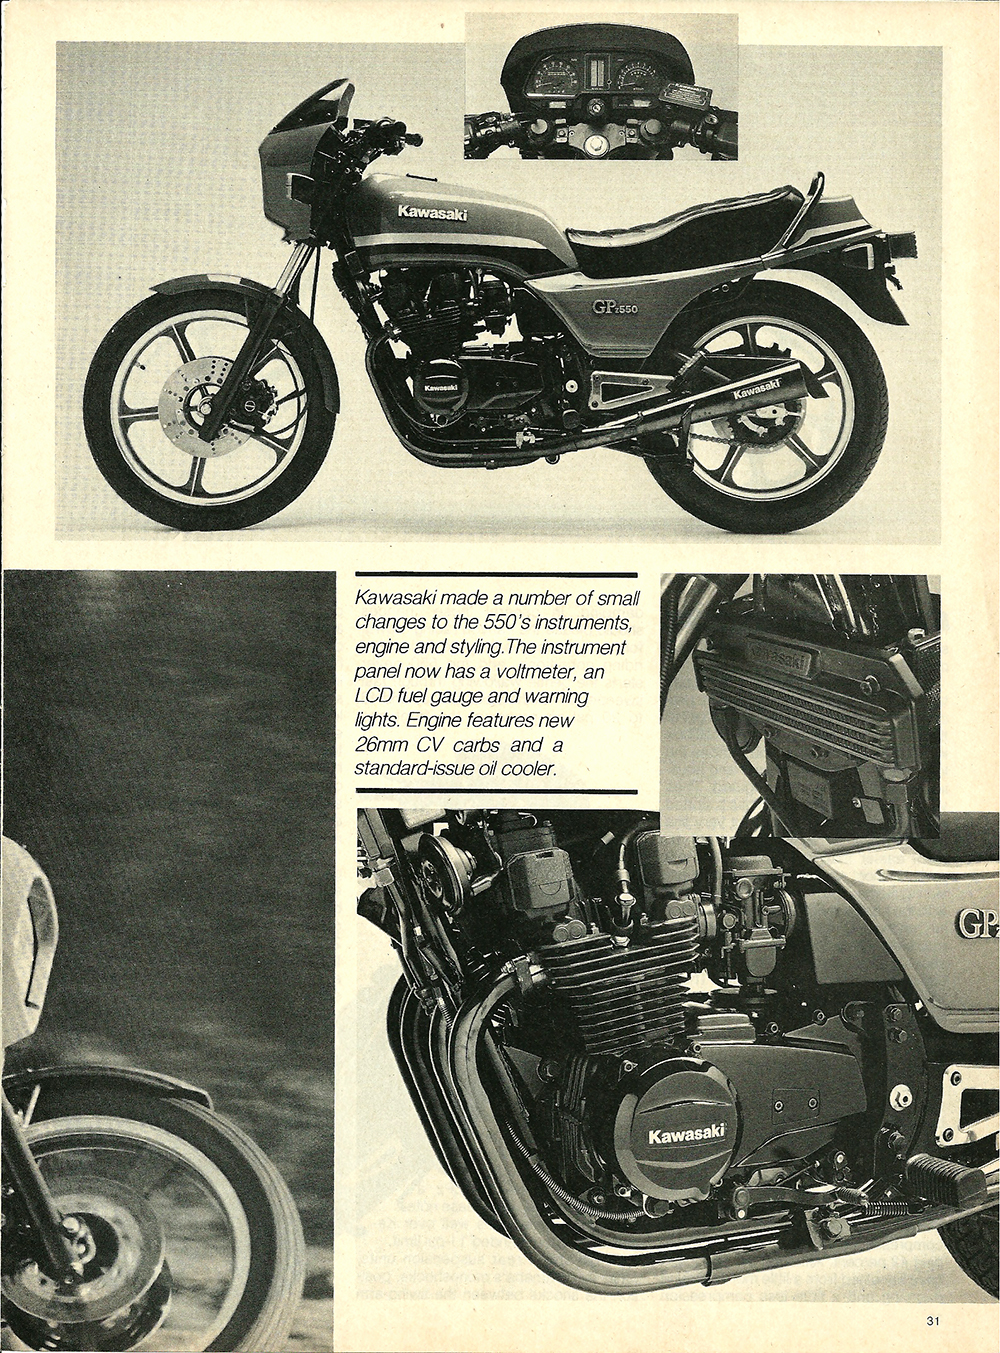 1982 Kawasaki GPz550 road test 04.jpg